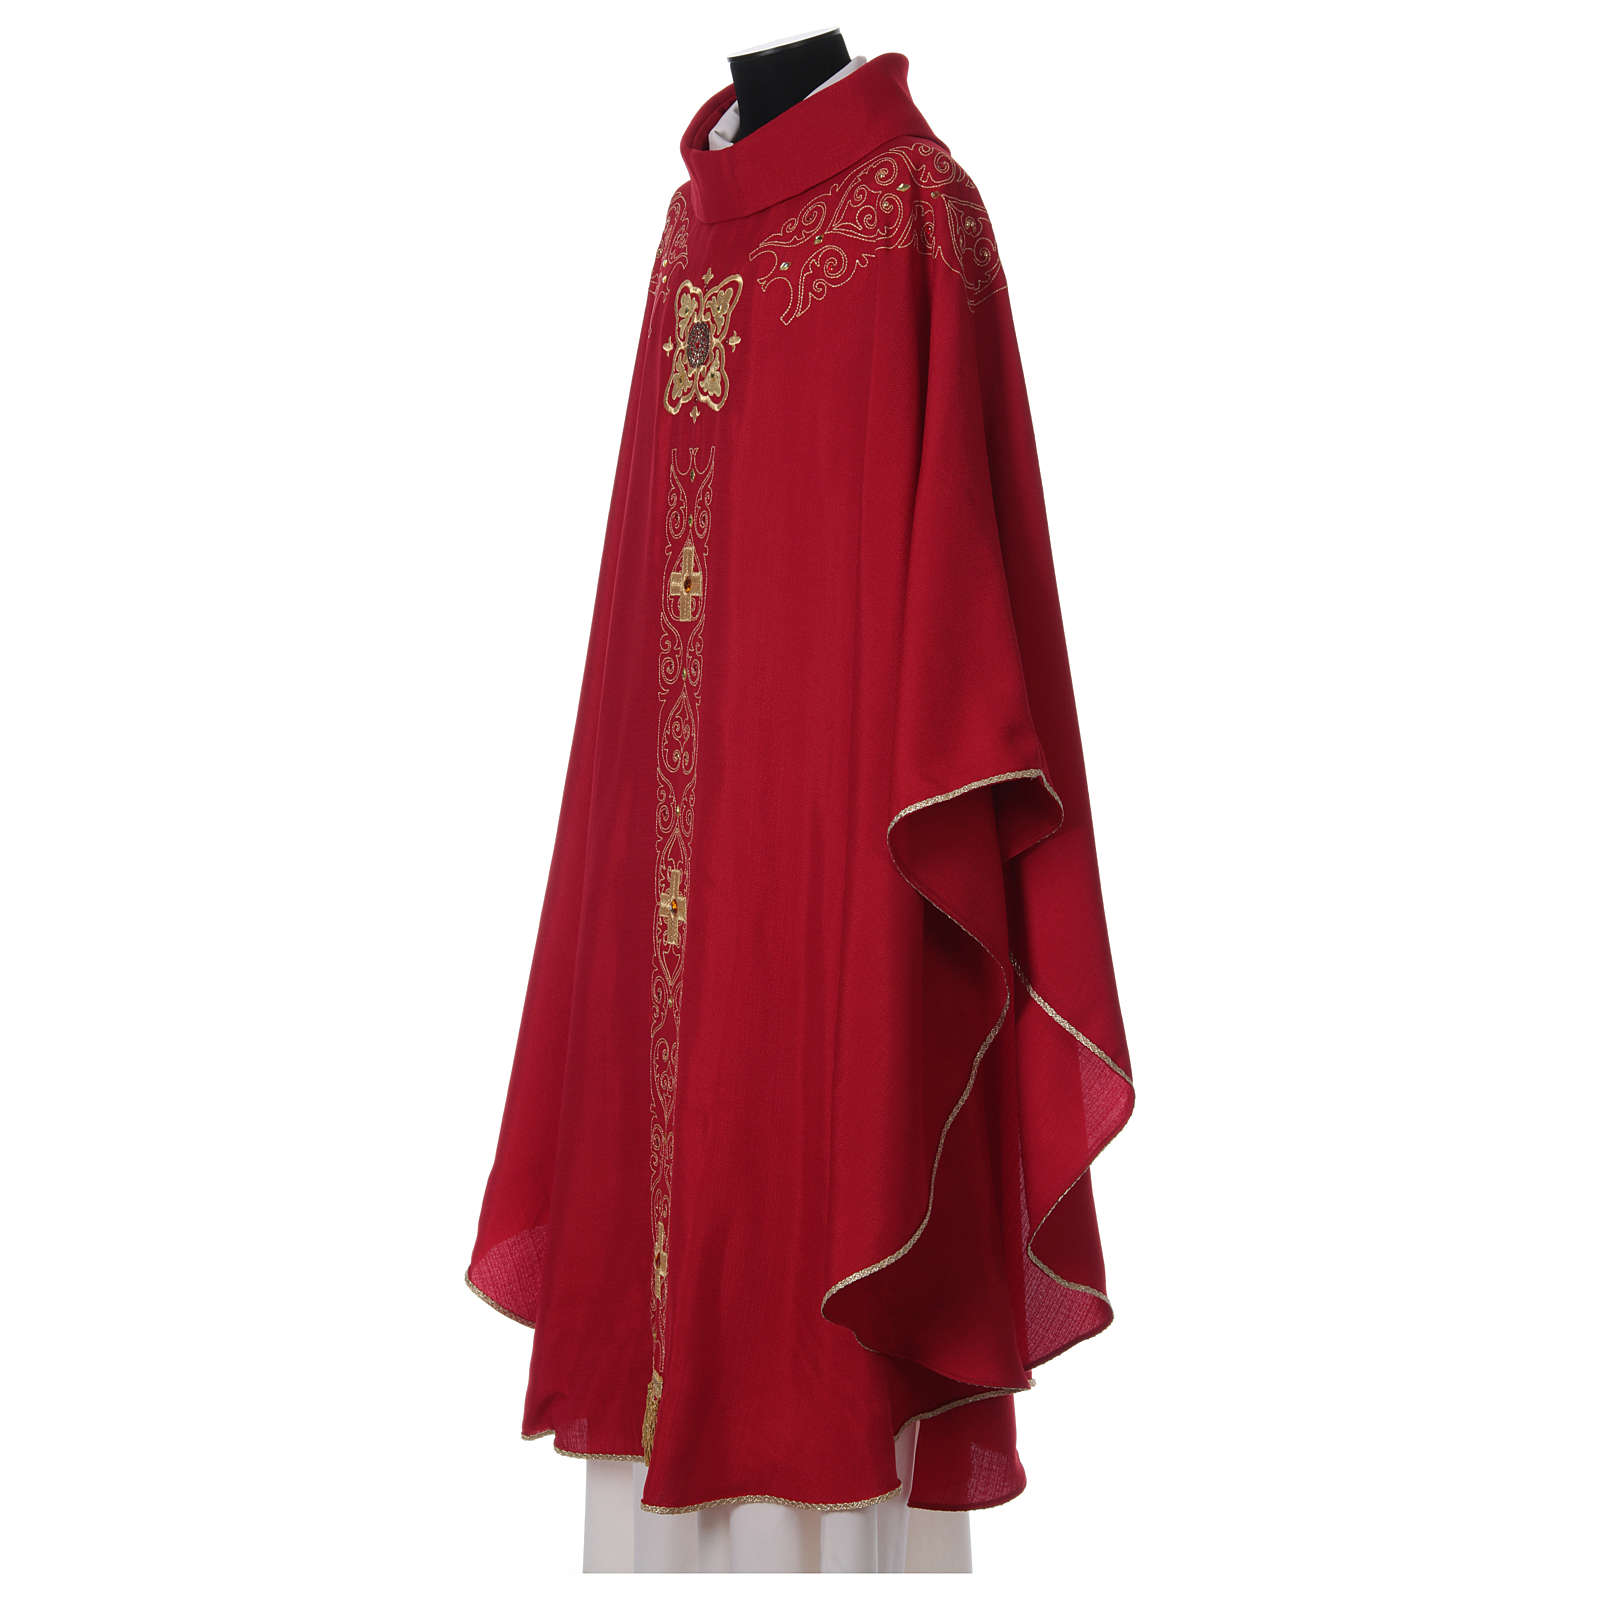 Chasuble and stole with embroidery, Italian neckline 4